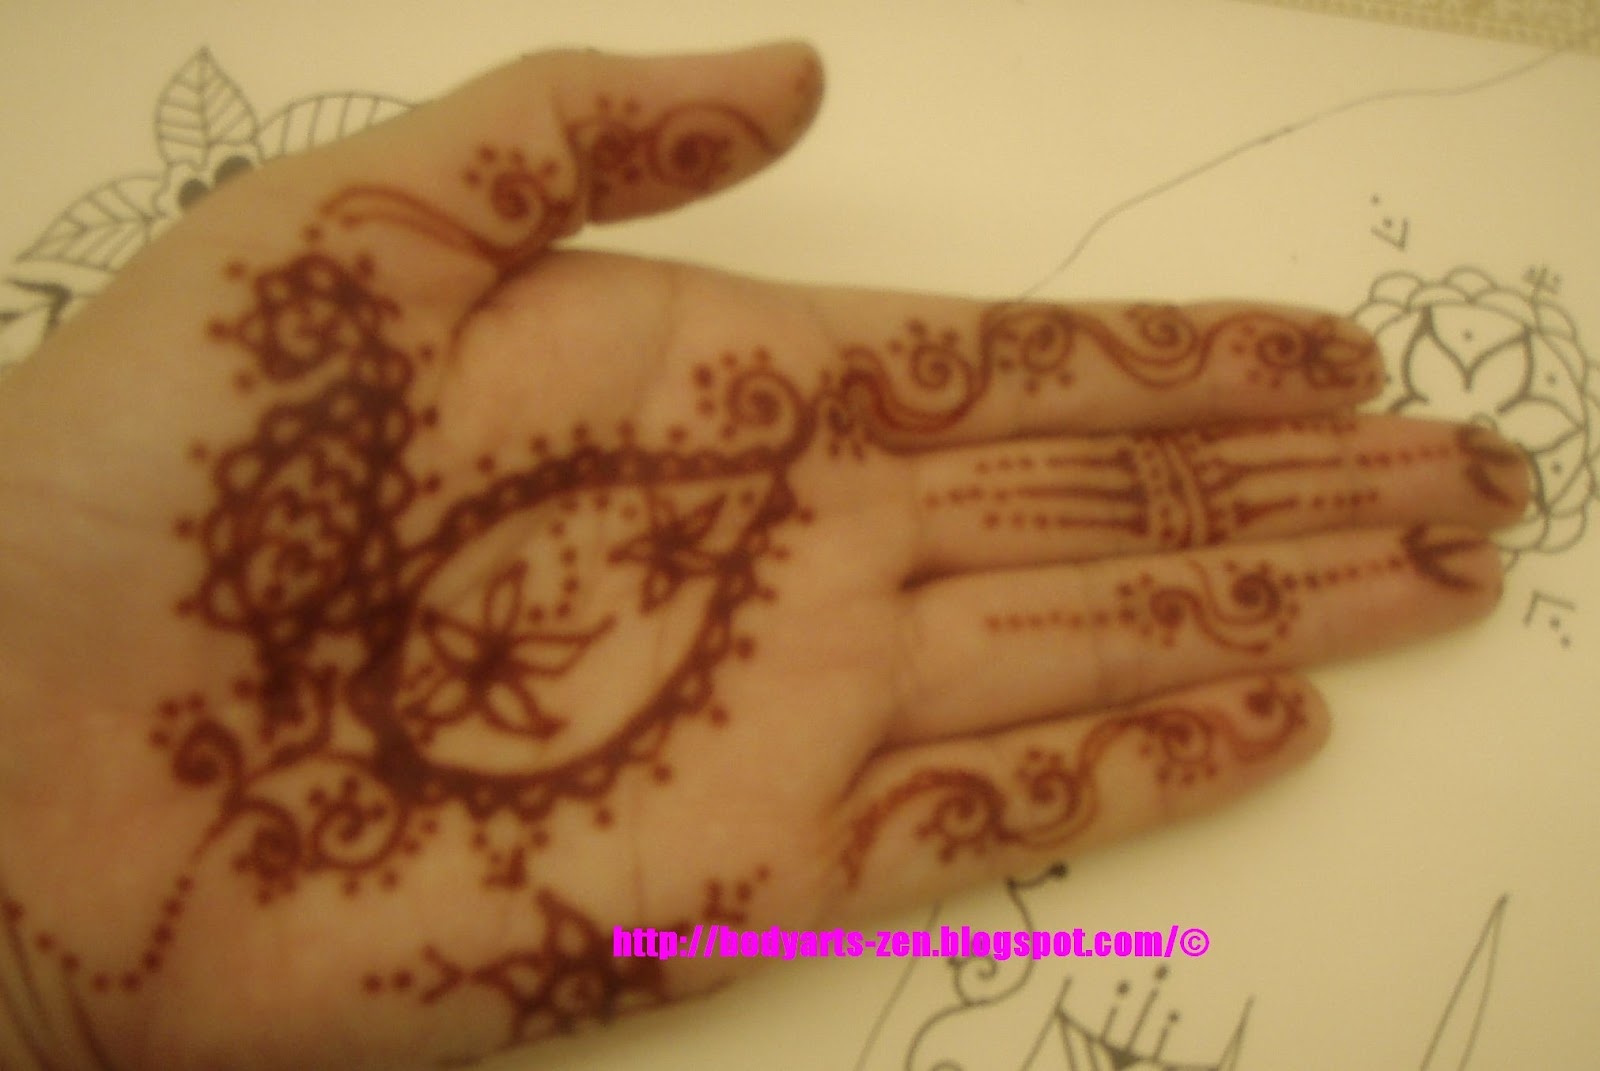 FACE PAINTING KL BODY ART HENNA TATTOO INAI HENNA Tattoo